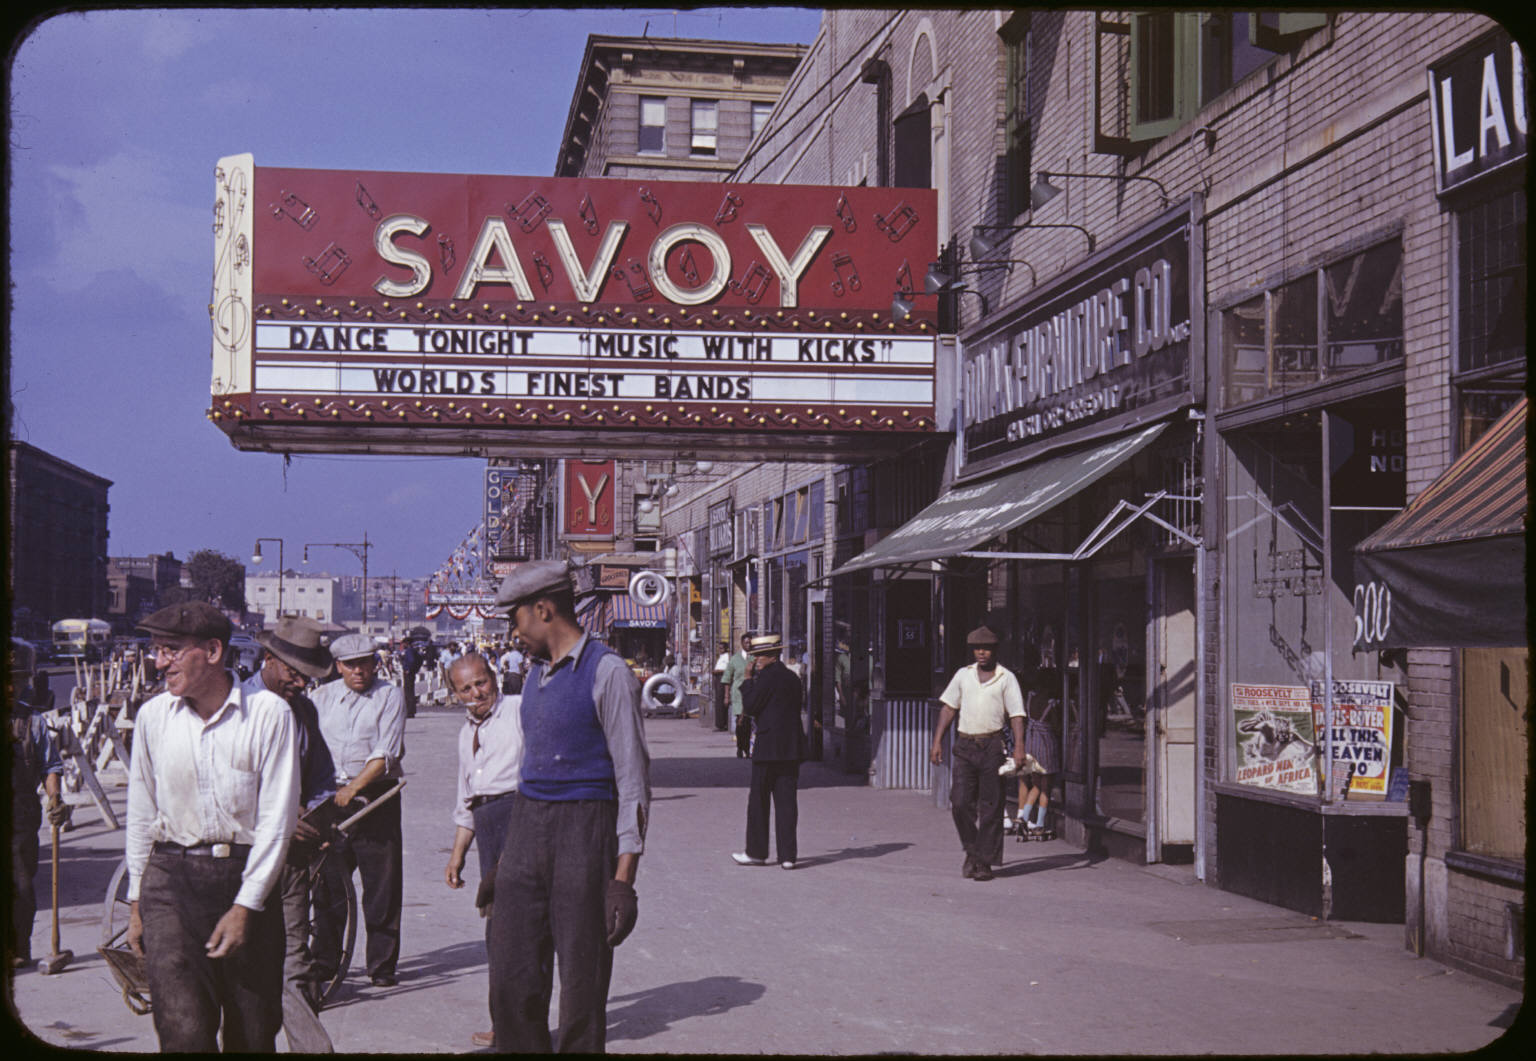 1939 – Savoy Ballroom marquee in the day time, original colour photograph, not retouched. Source: Unknown.